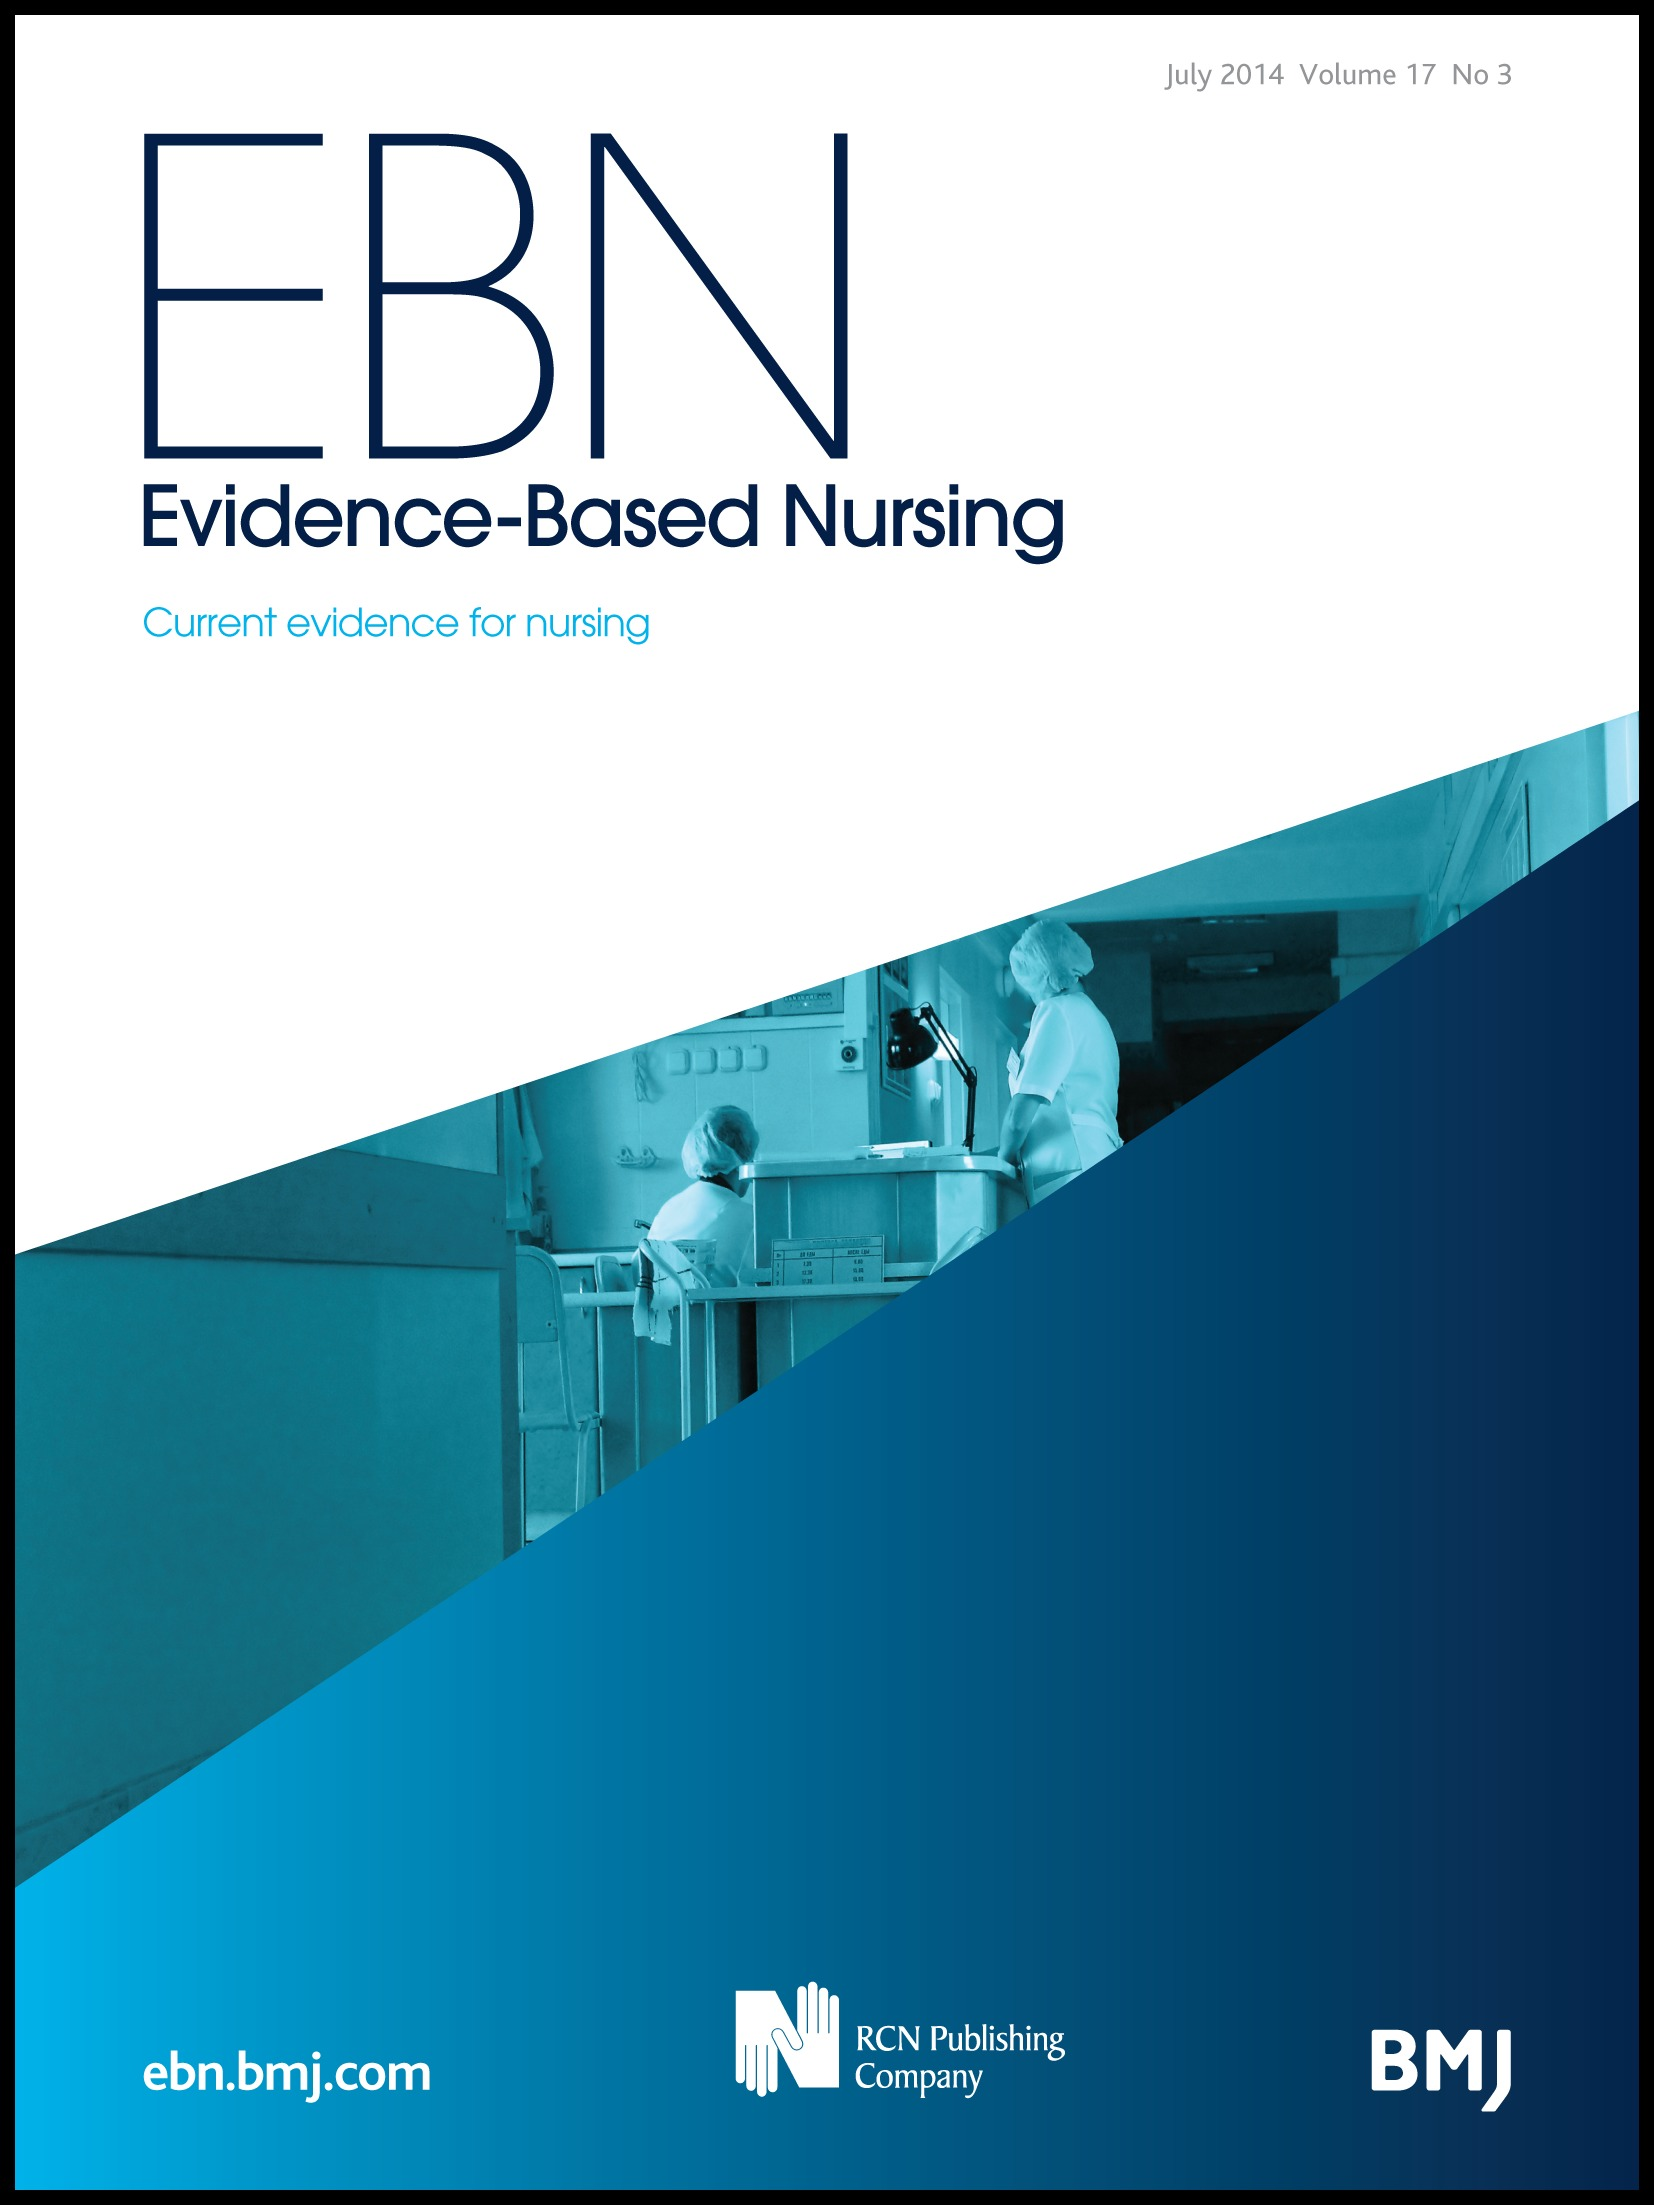 similarities and differences betweeen evidence based It provides an opportunity to gain a comprehensive overview of concepts in best  evidence, to understand distinctions between evidence-based medicine and.